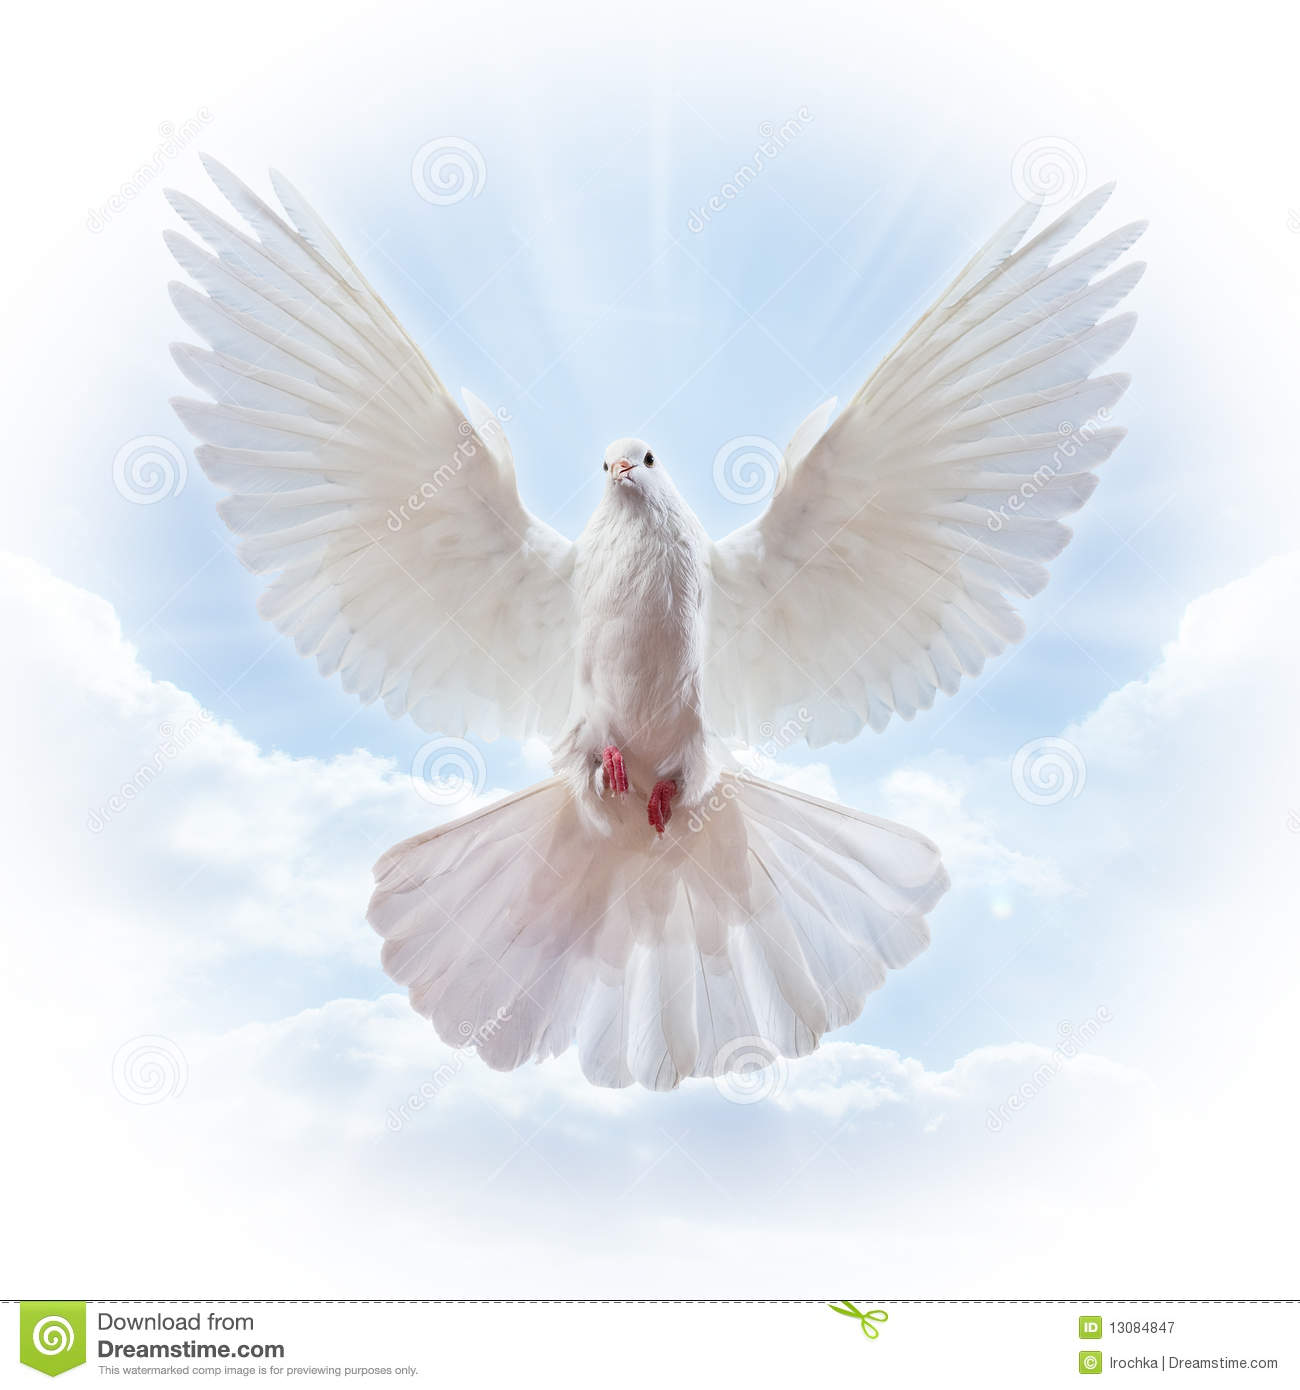 Dove In The Air With Wings Wide Open Royalty Free Stock